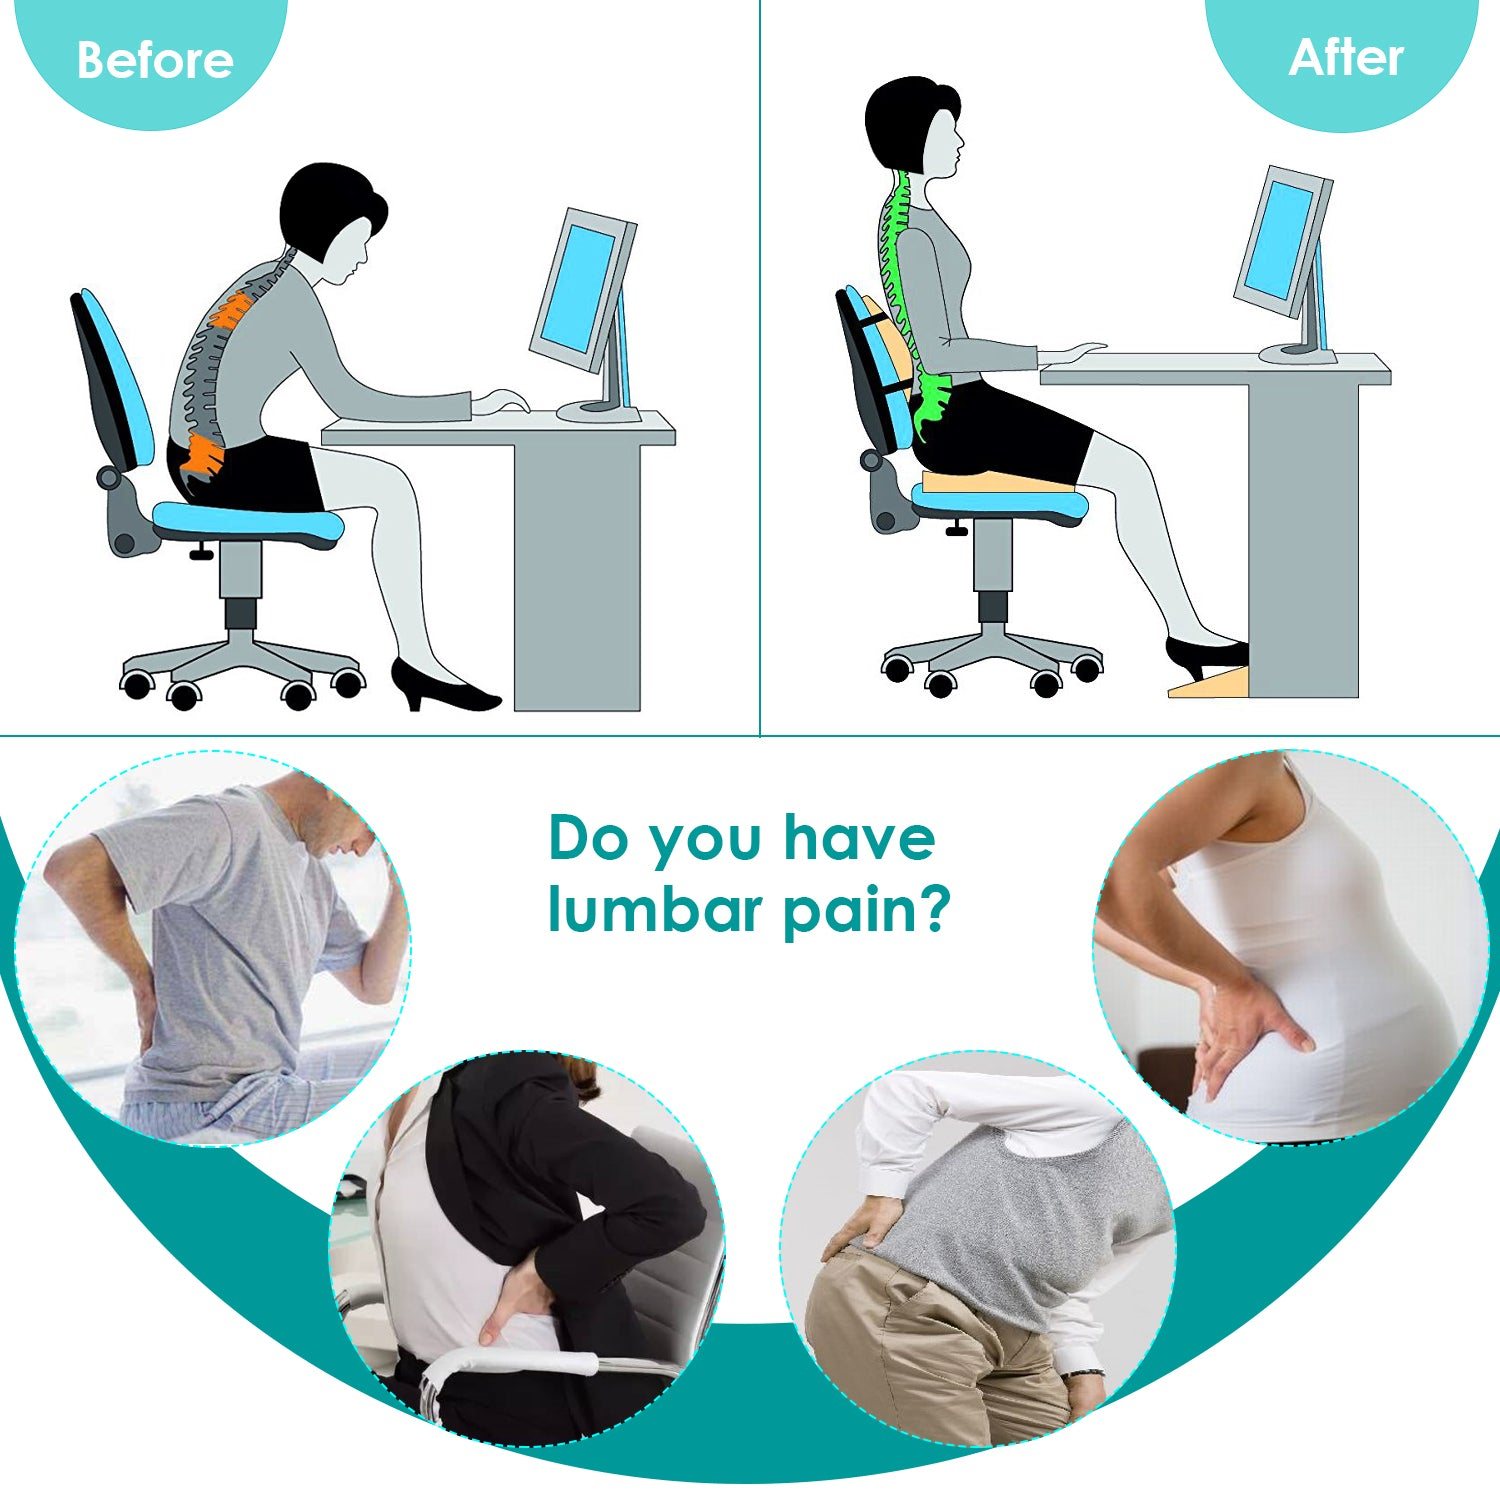 Marvelous Feagar Lumbar Support Pillow Back Cushion Memory Foam Caraccident5 Cool Chair Designs And Ideas Caraccident5Info